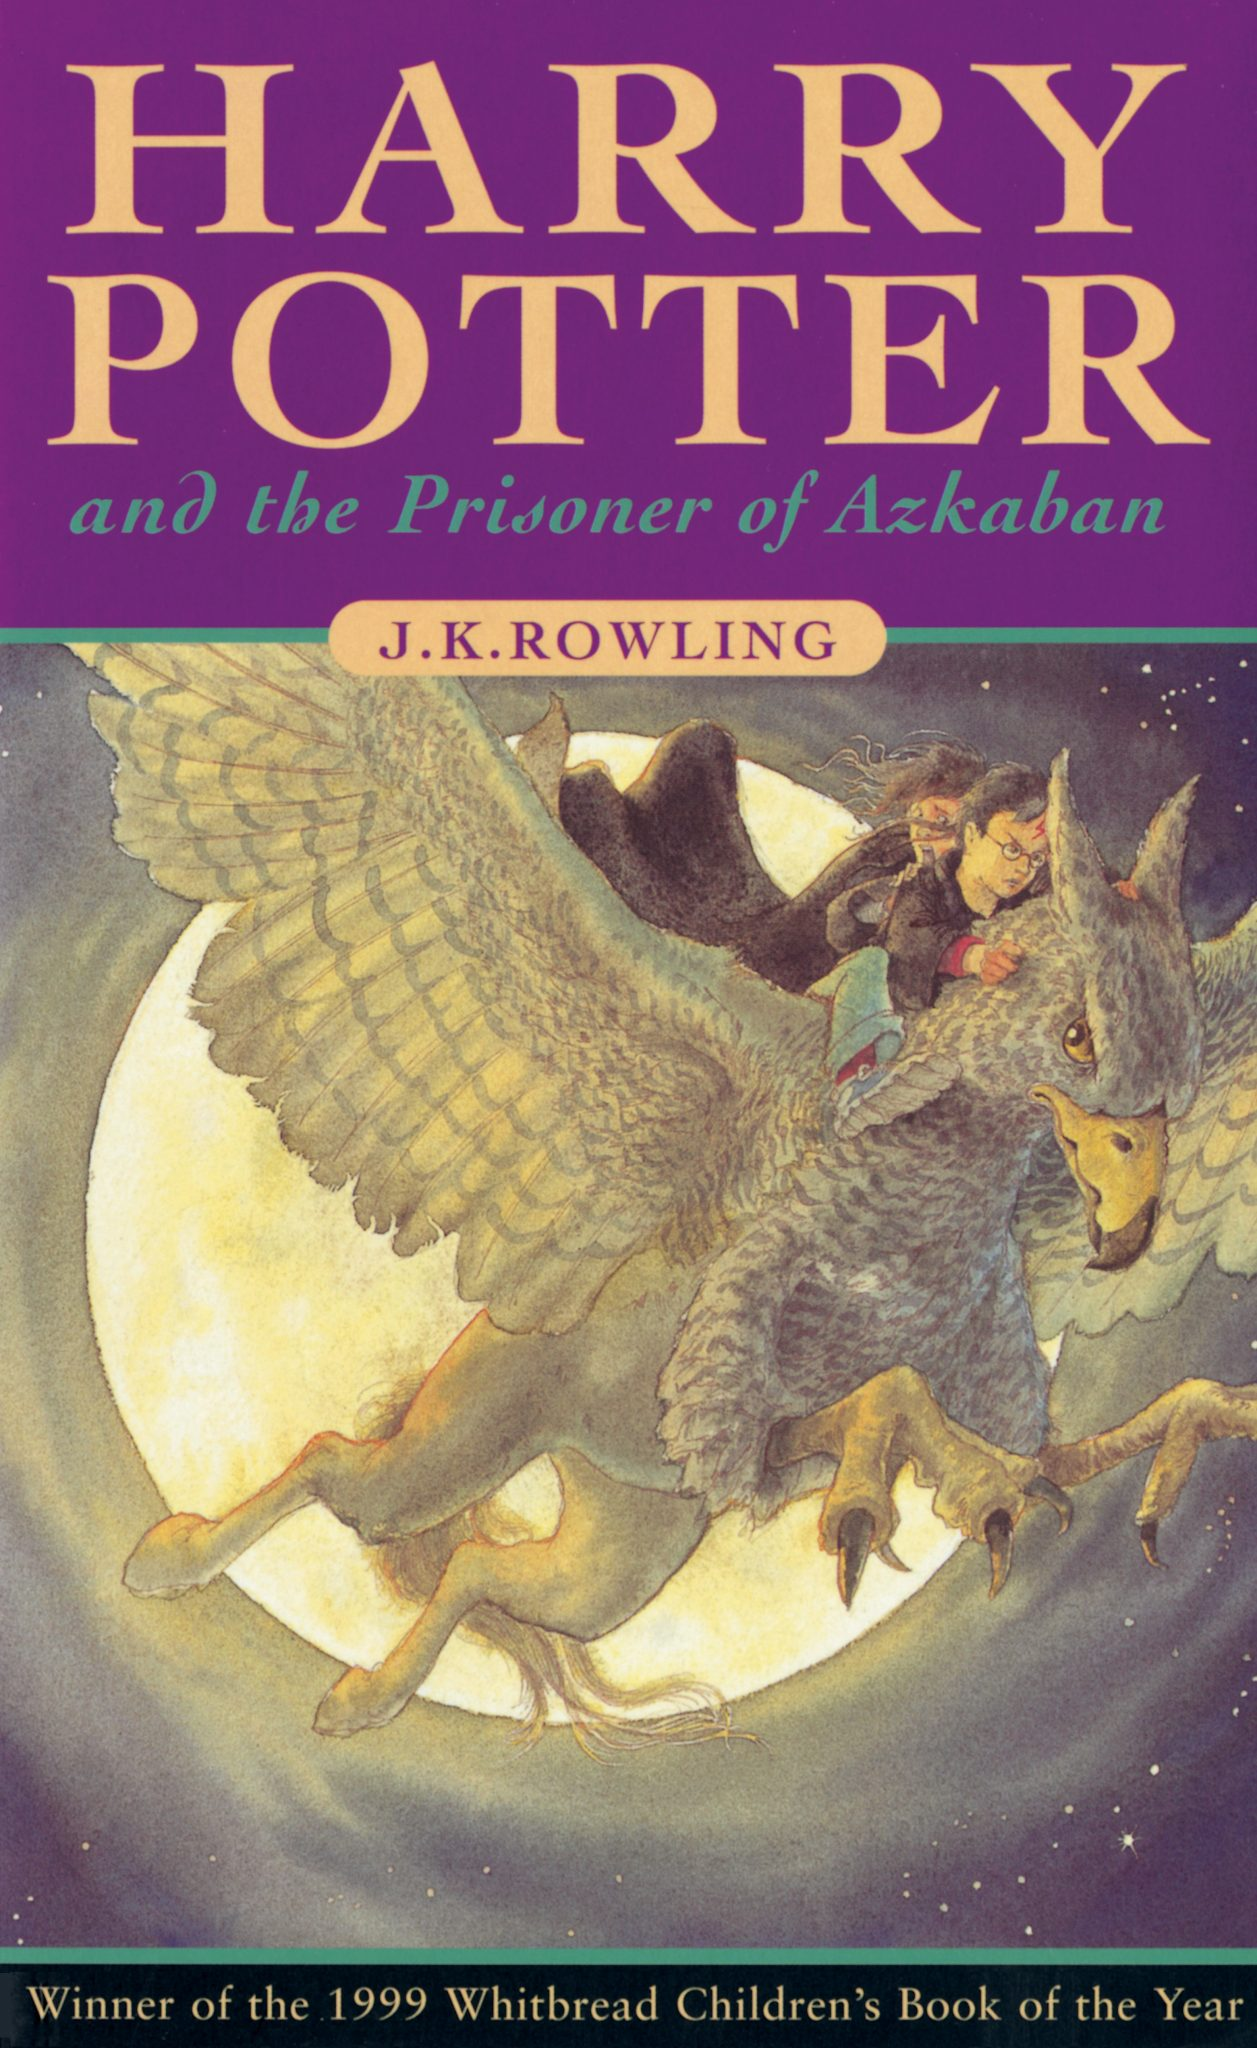 Review: Harry Potter and the Prisoner of Azkaban